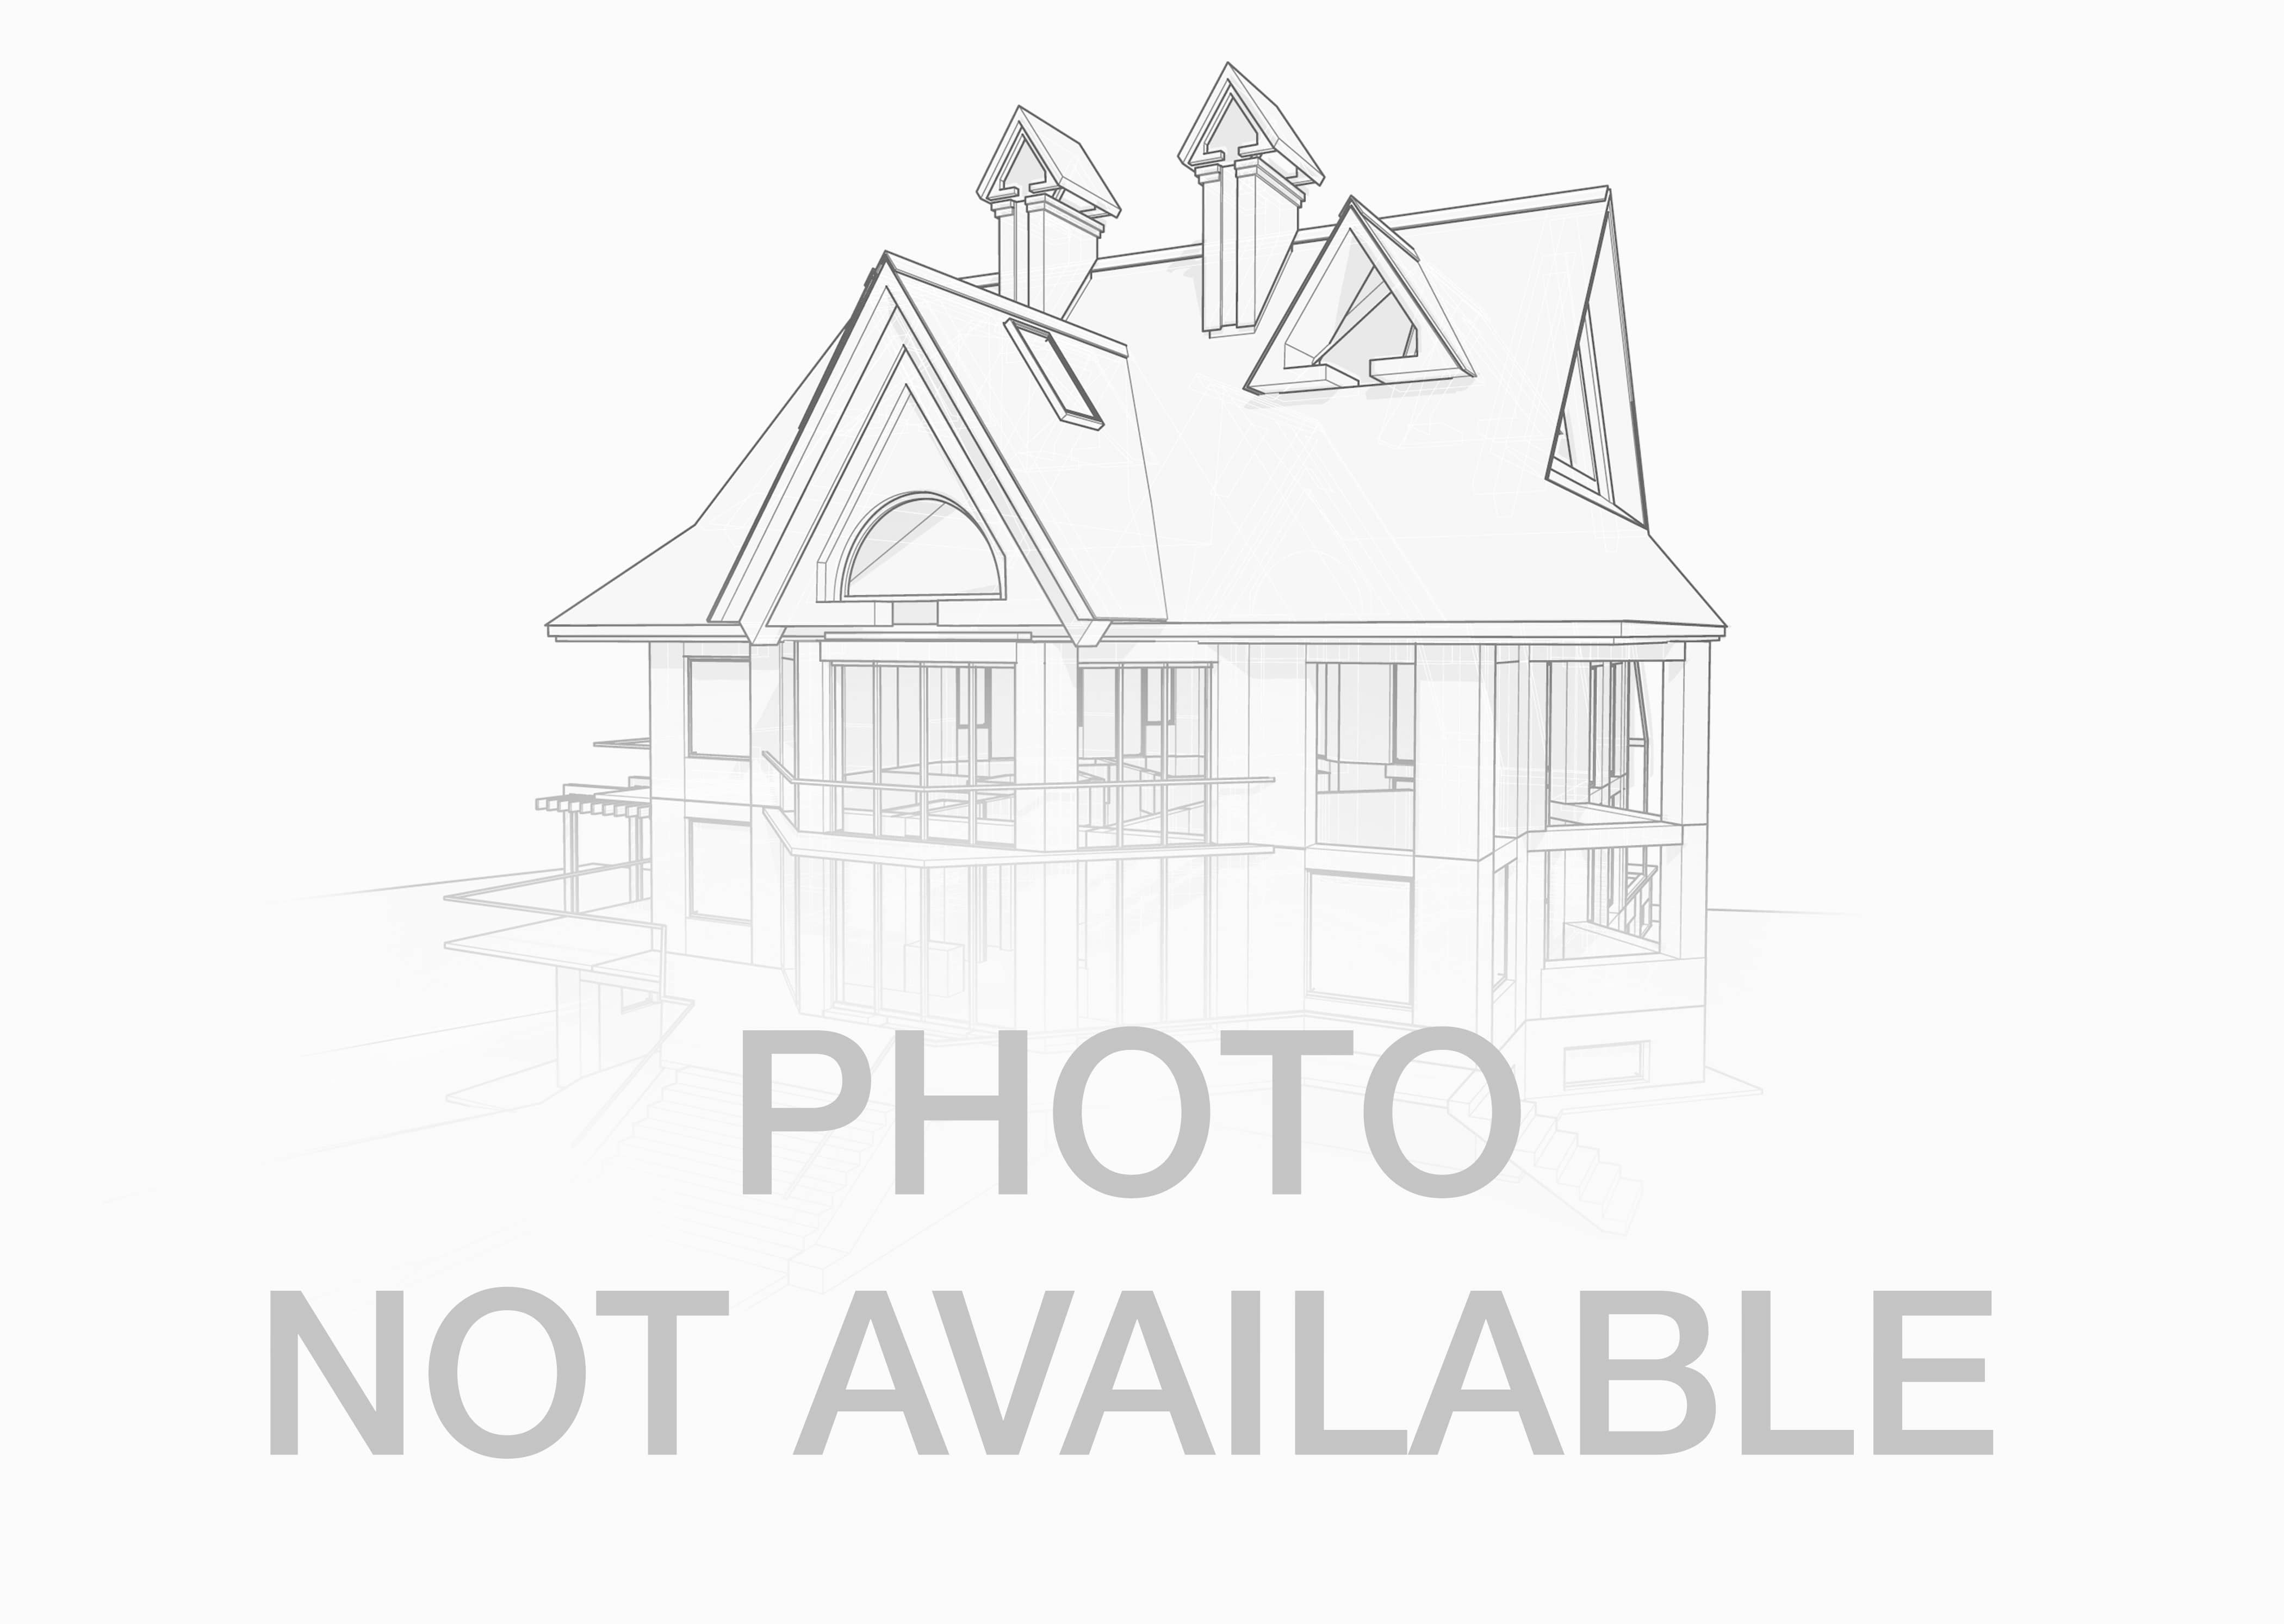 44859 >> Gore Orphanage Rd Rochester Oh 44859 Mls Id 4045471 Burgan